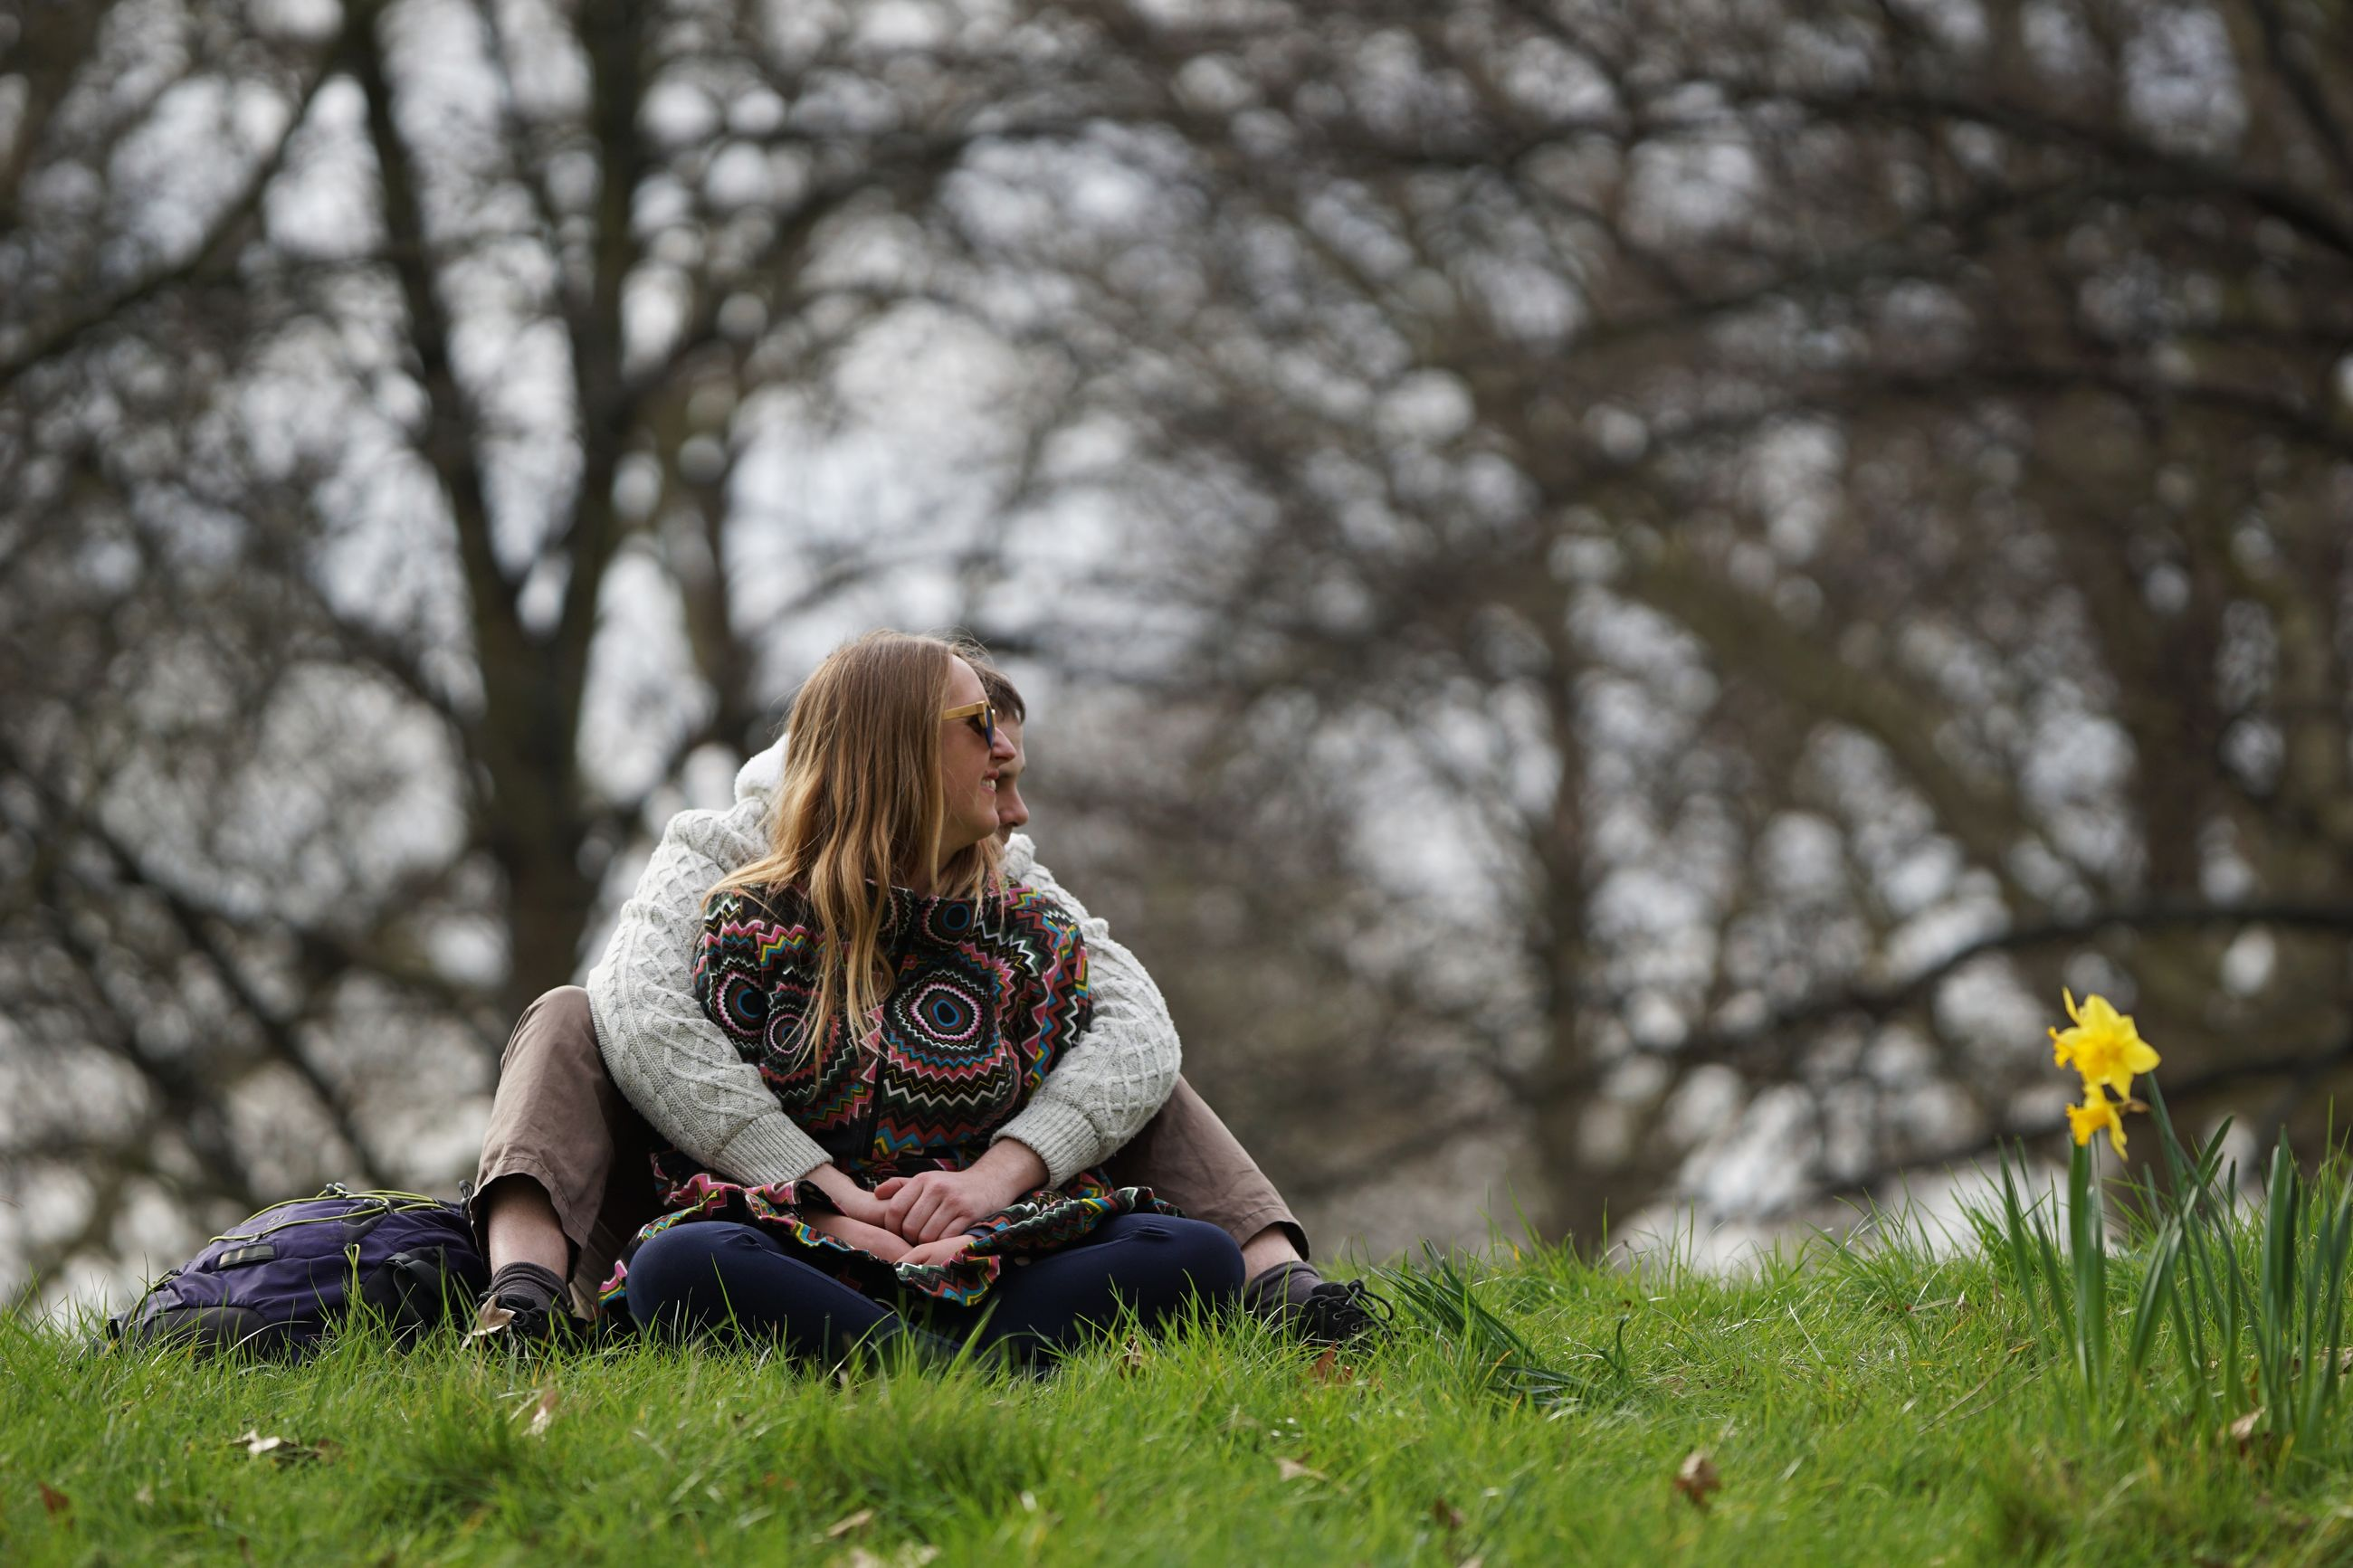 plant, leisure activity, sitting, tree, women, grass, one person, lifestyles, real people, nature, hair, adult, land, young women, young adult, casual clothing, front view, field, full length, hairstyle, outdoors